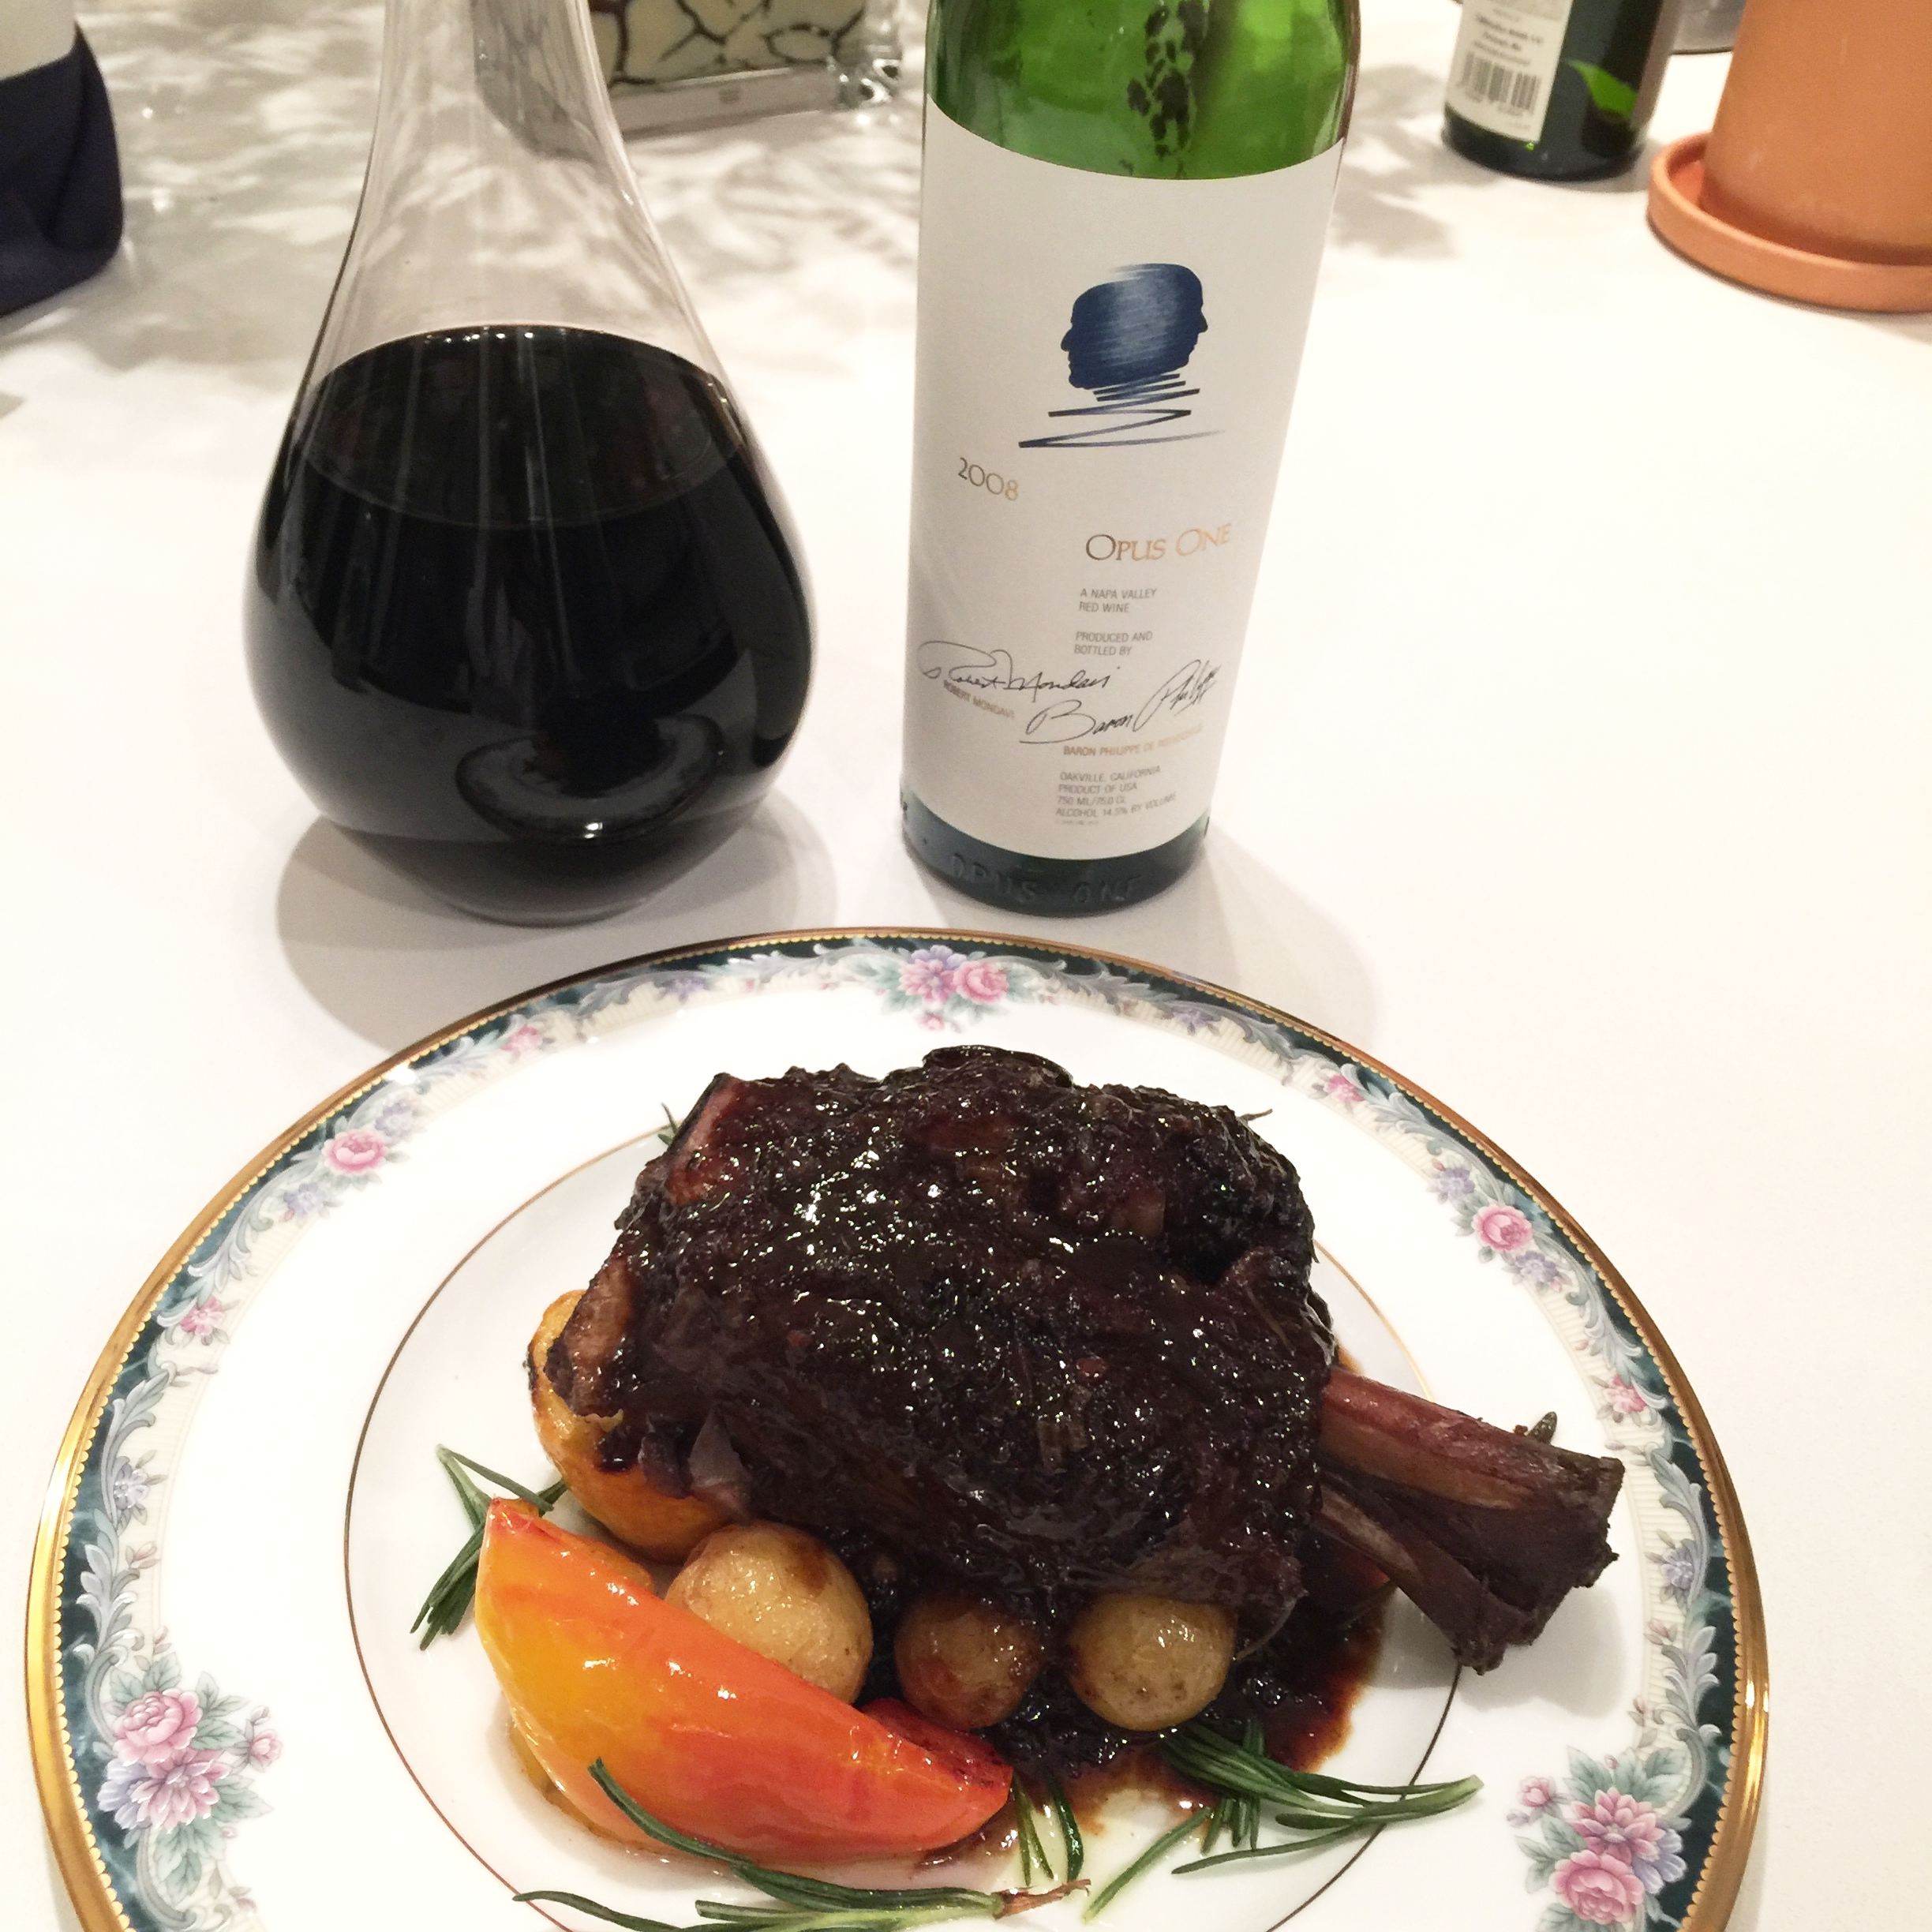 Opus One with Lamb Shank